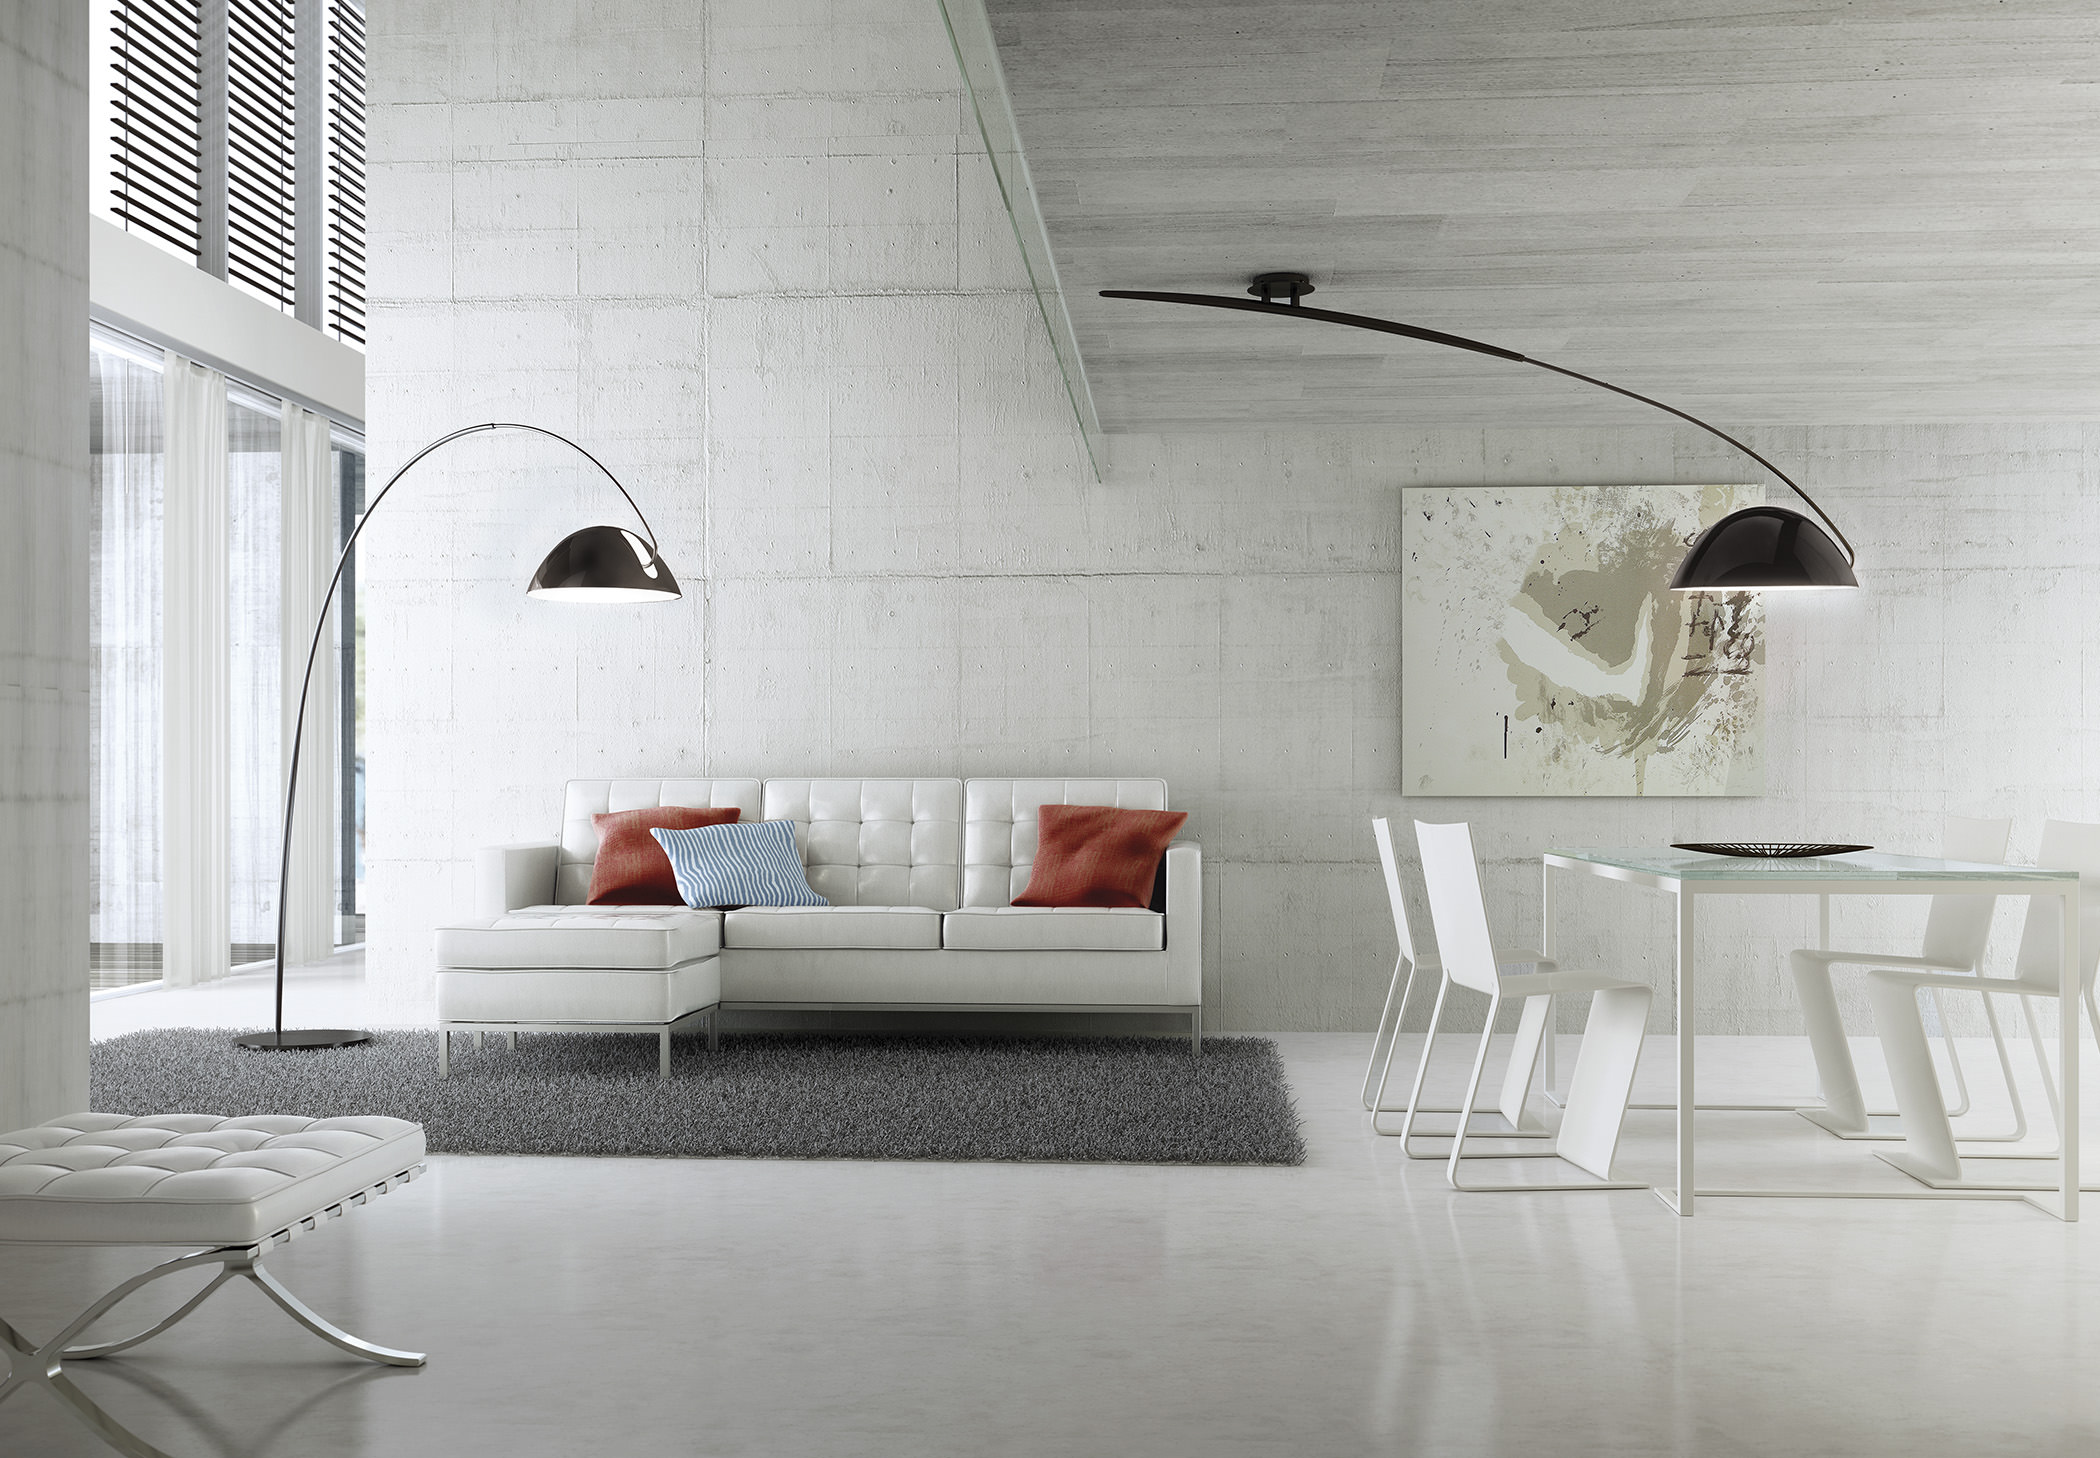 Pluma T 2955 Suspension Lamp Estiluz Image Ambient 01 1